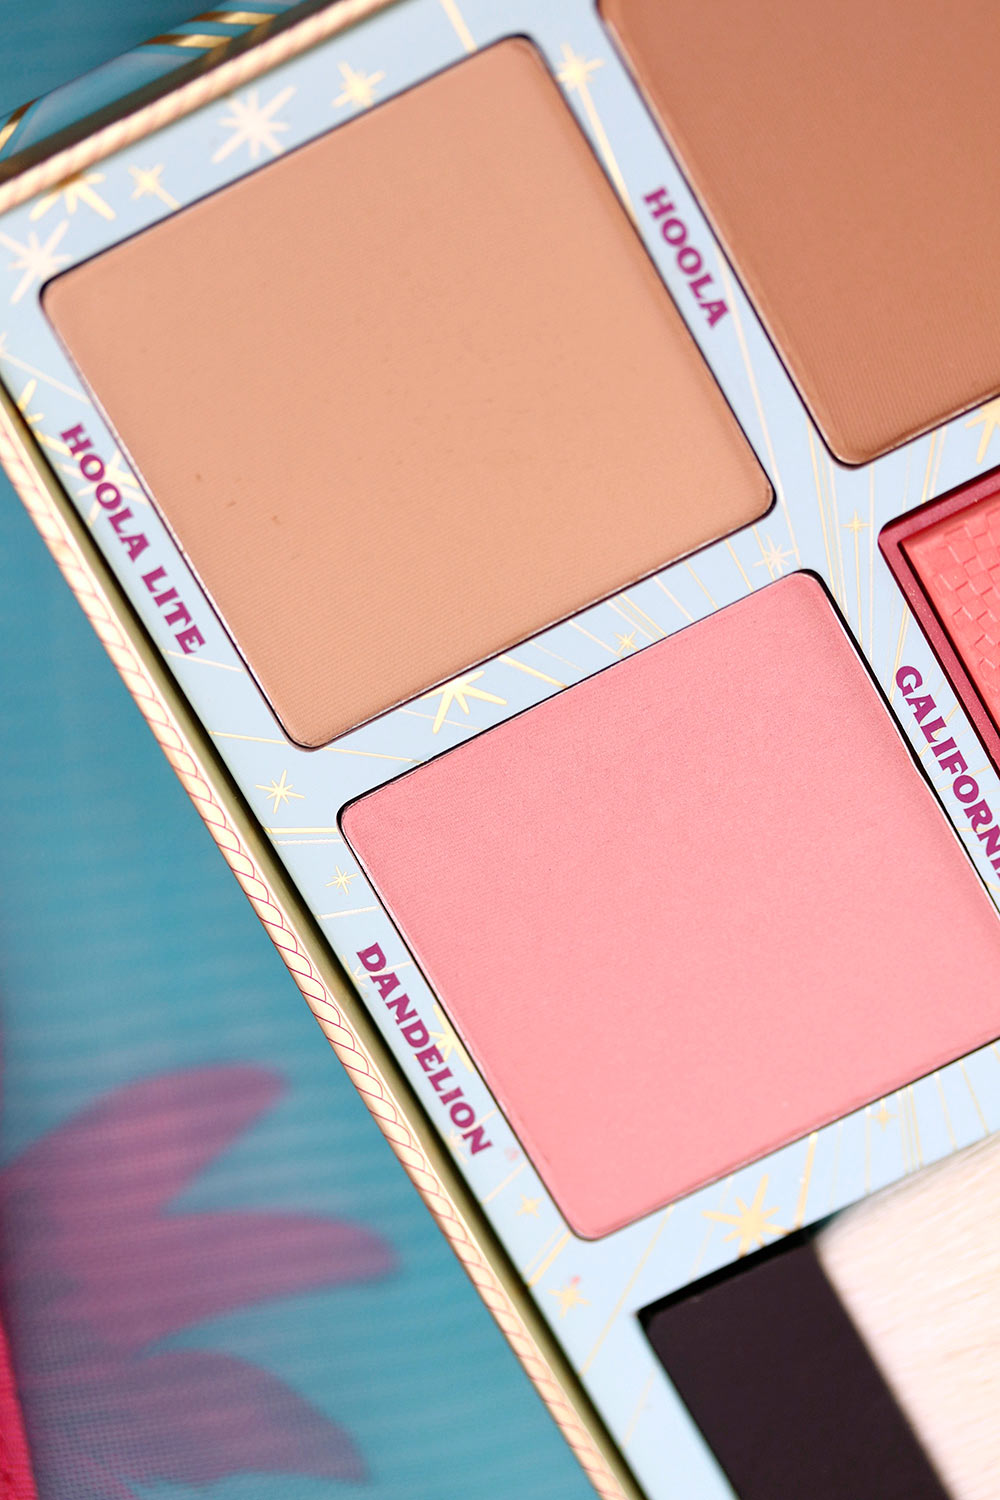 benefit cheek parade blush kit closeup 2